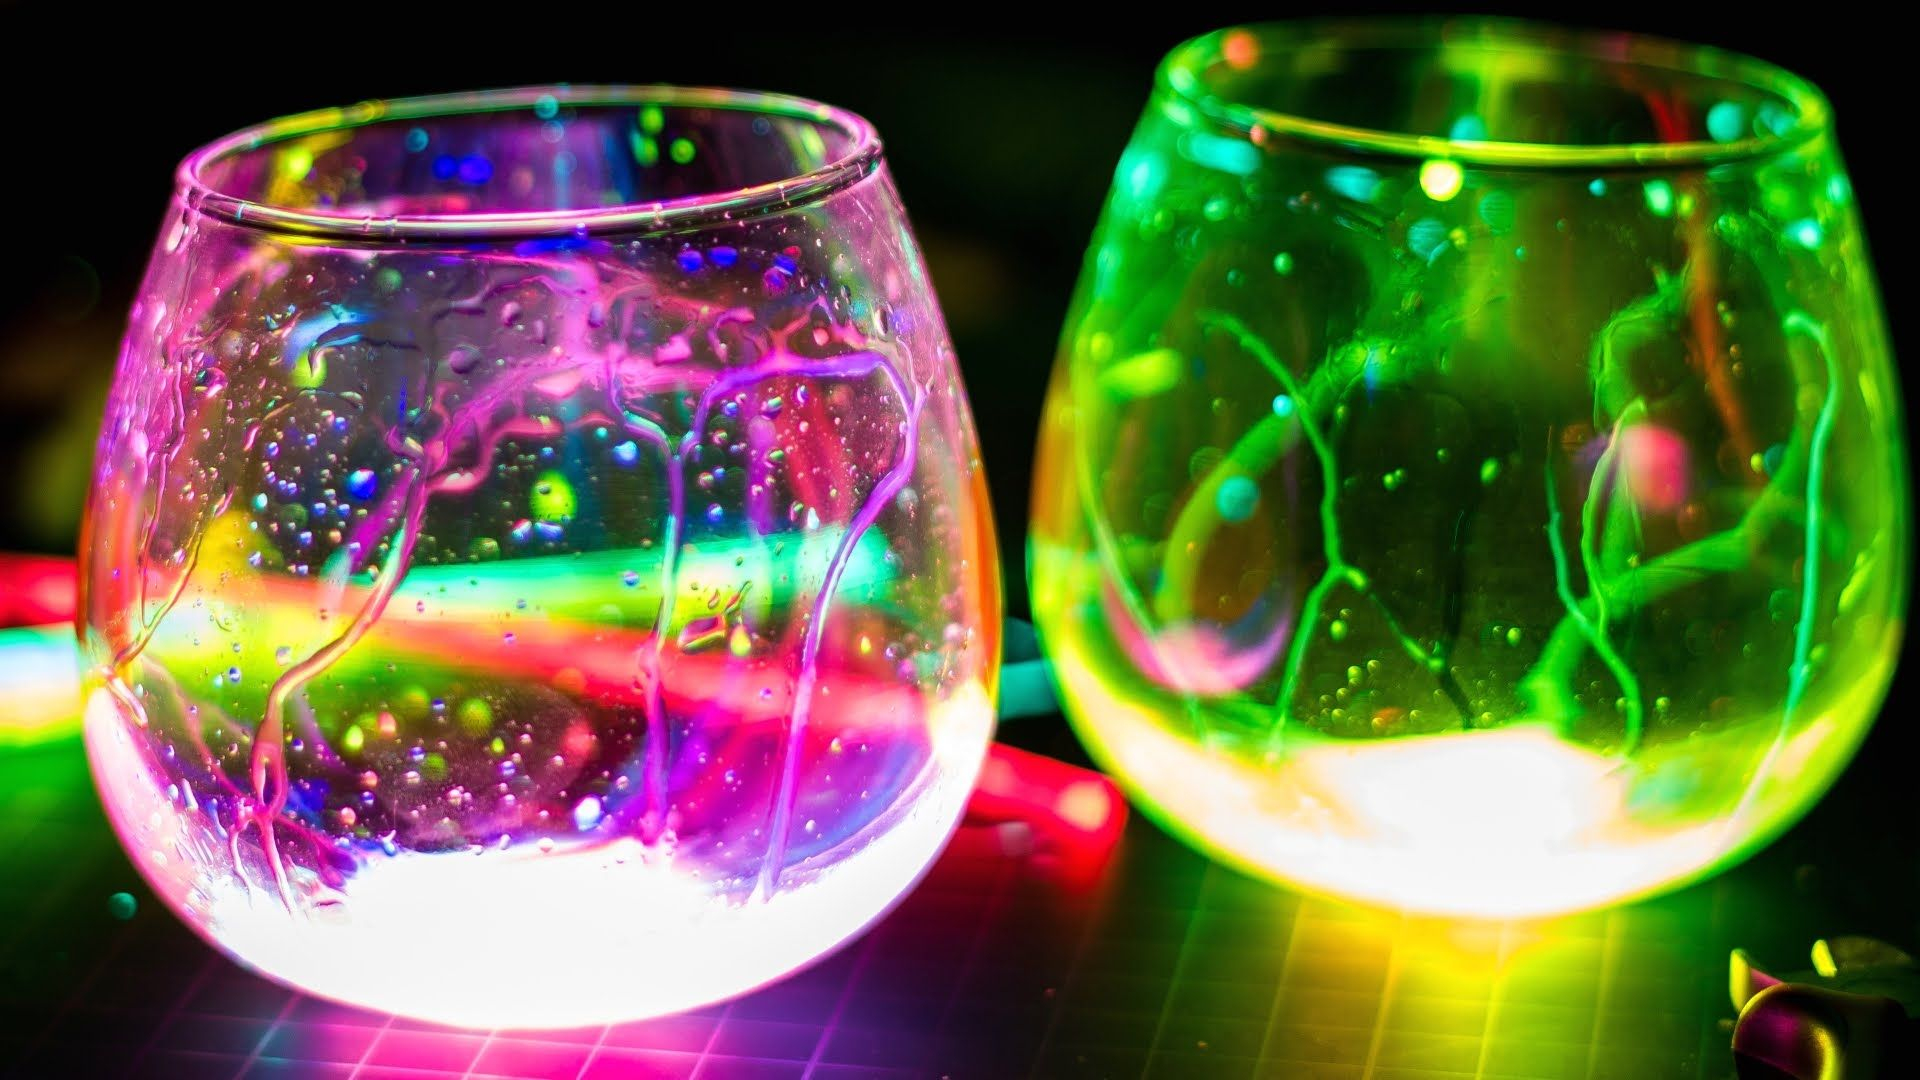 10 Magic And Cool Science Experiments You Can Do At Home With Kids